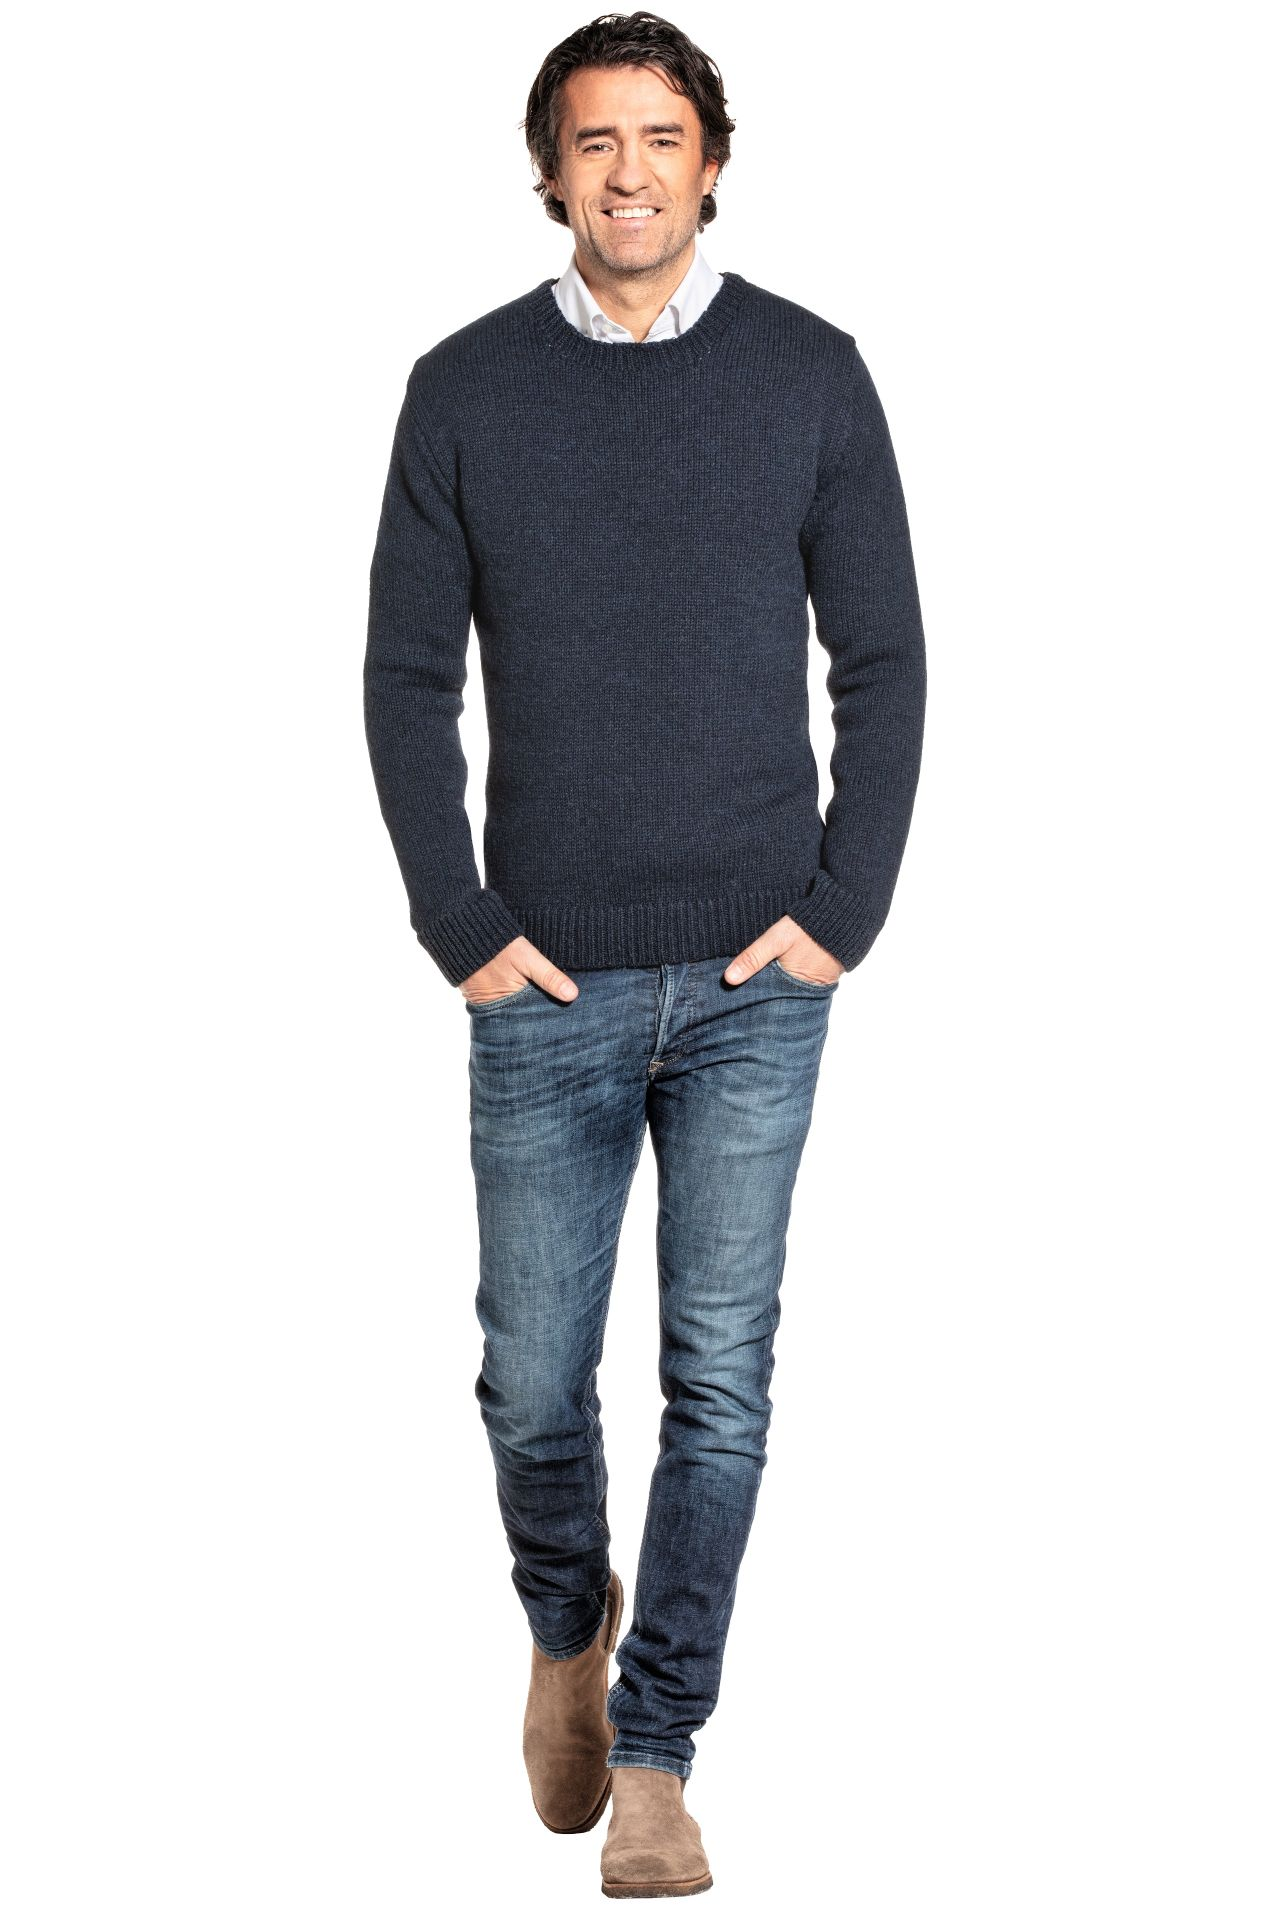 Joe Merino sweater worn by model.